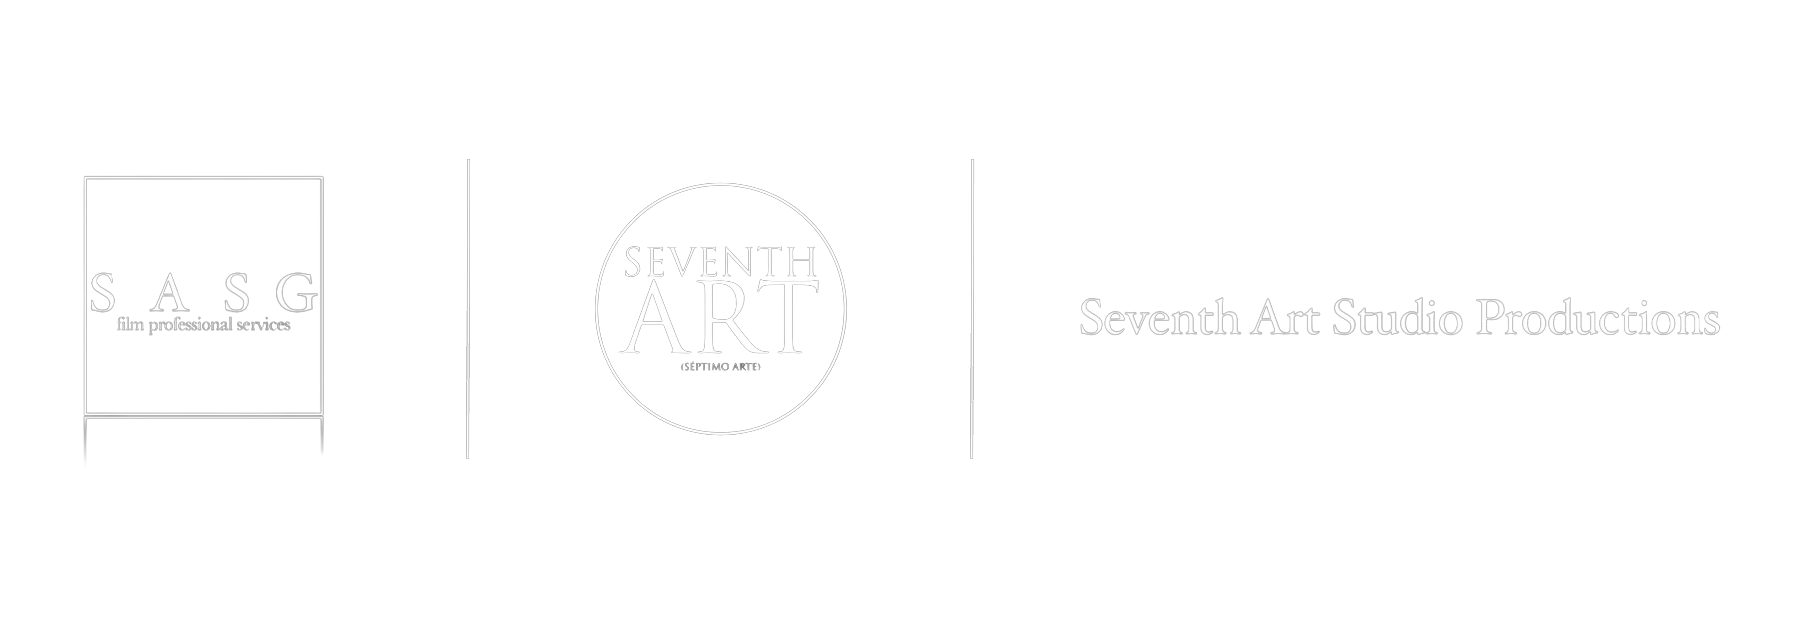 Seventh Art Studio